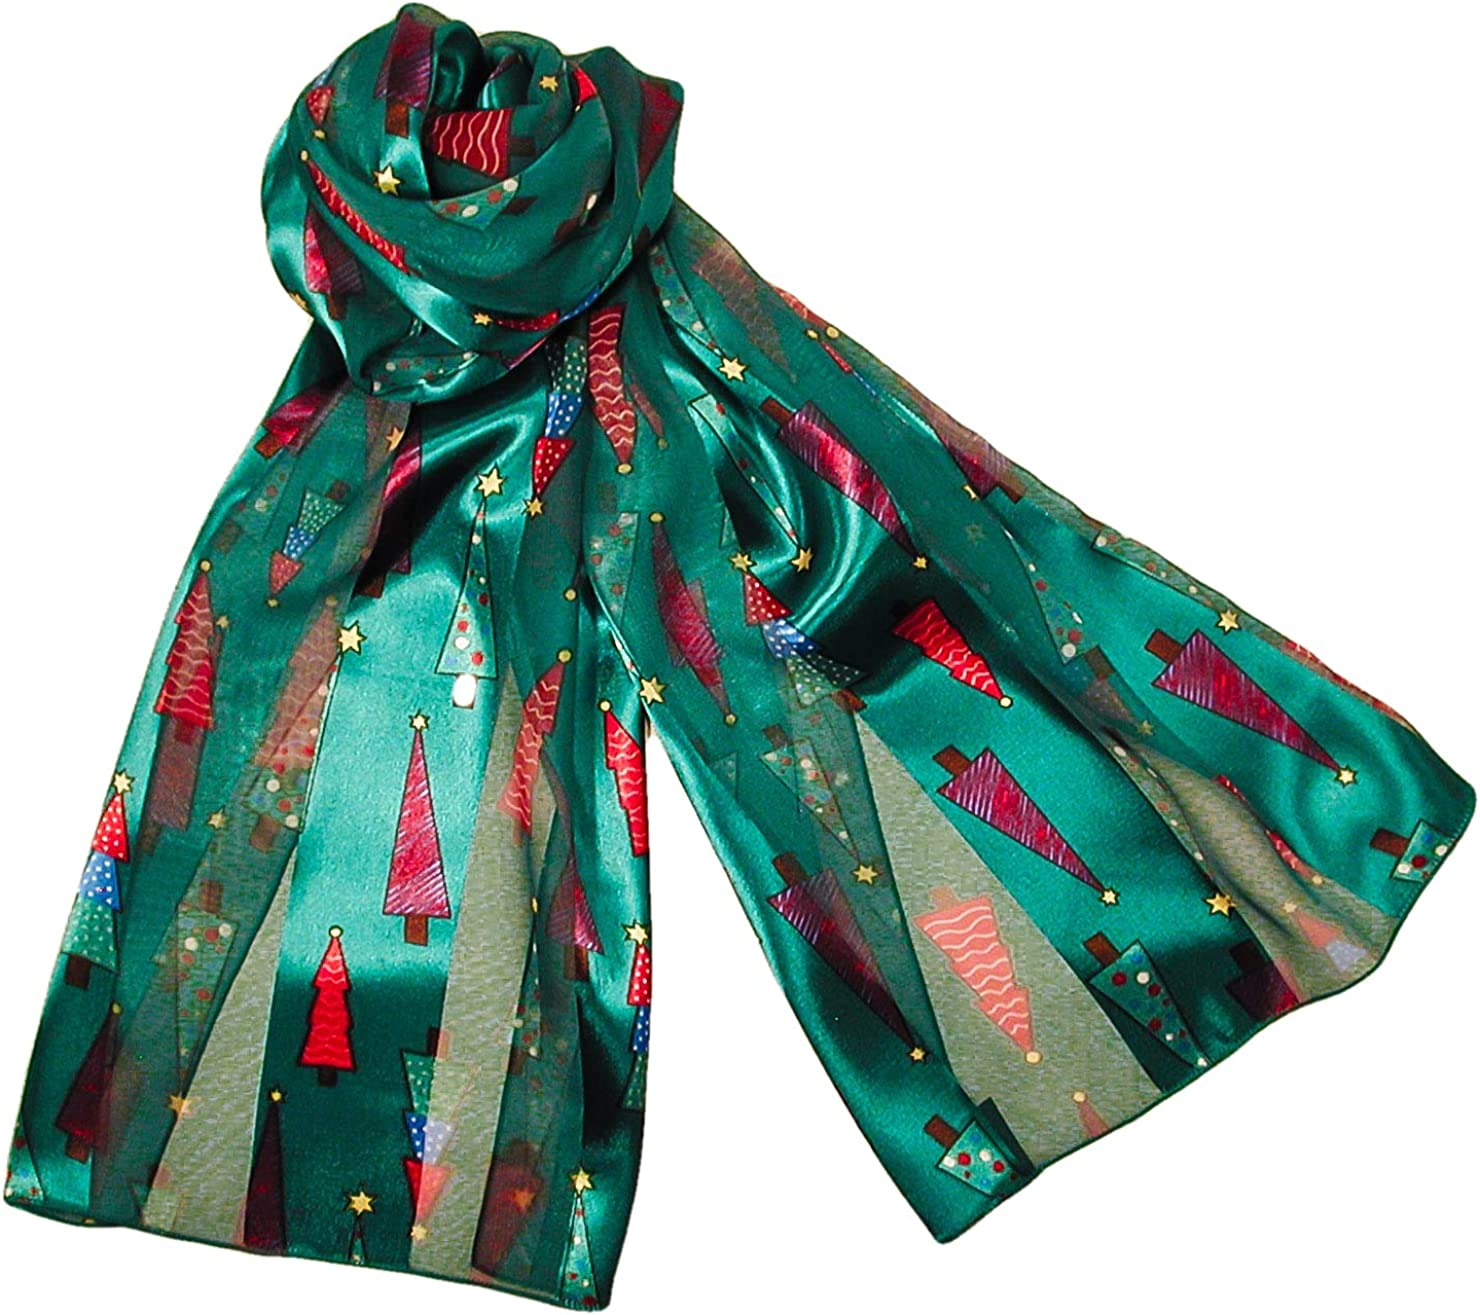 Colorful Christmas Tree Holiday Scarves with Gift Box Option